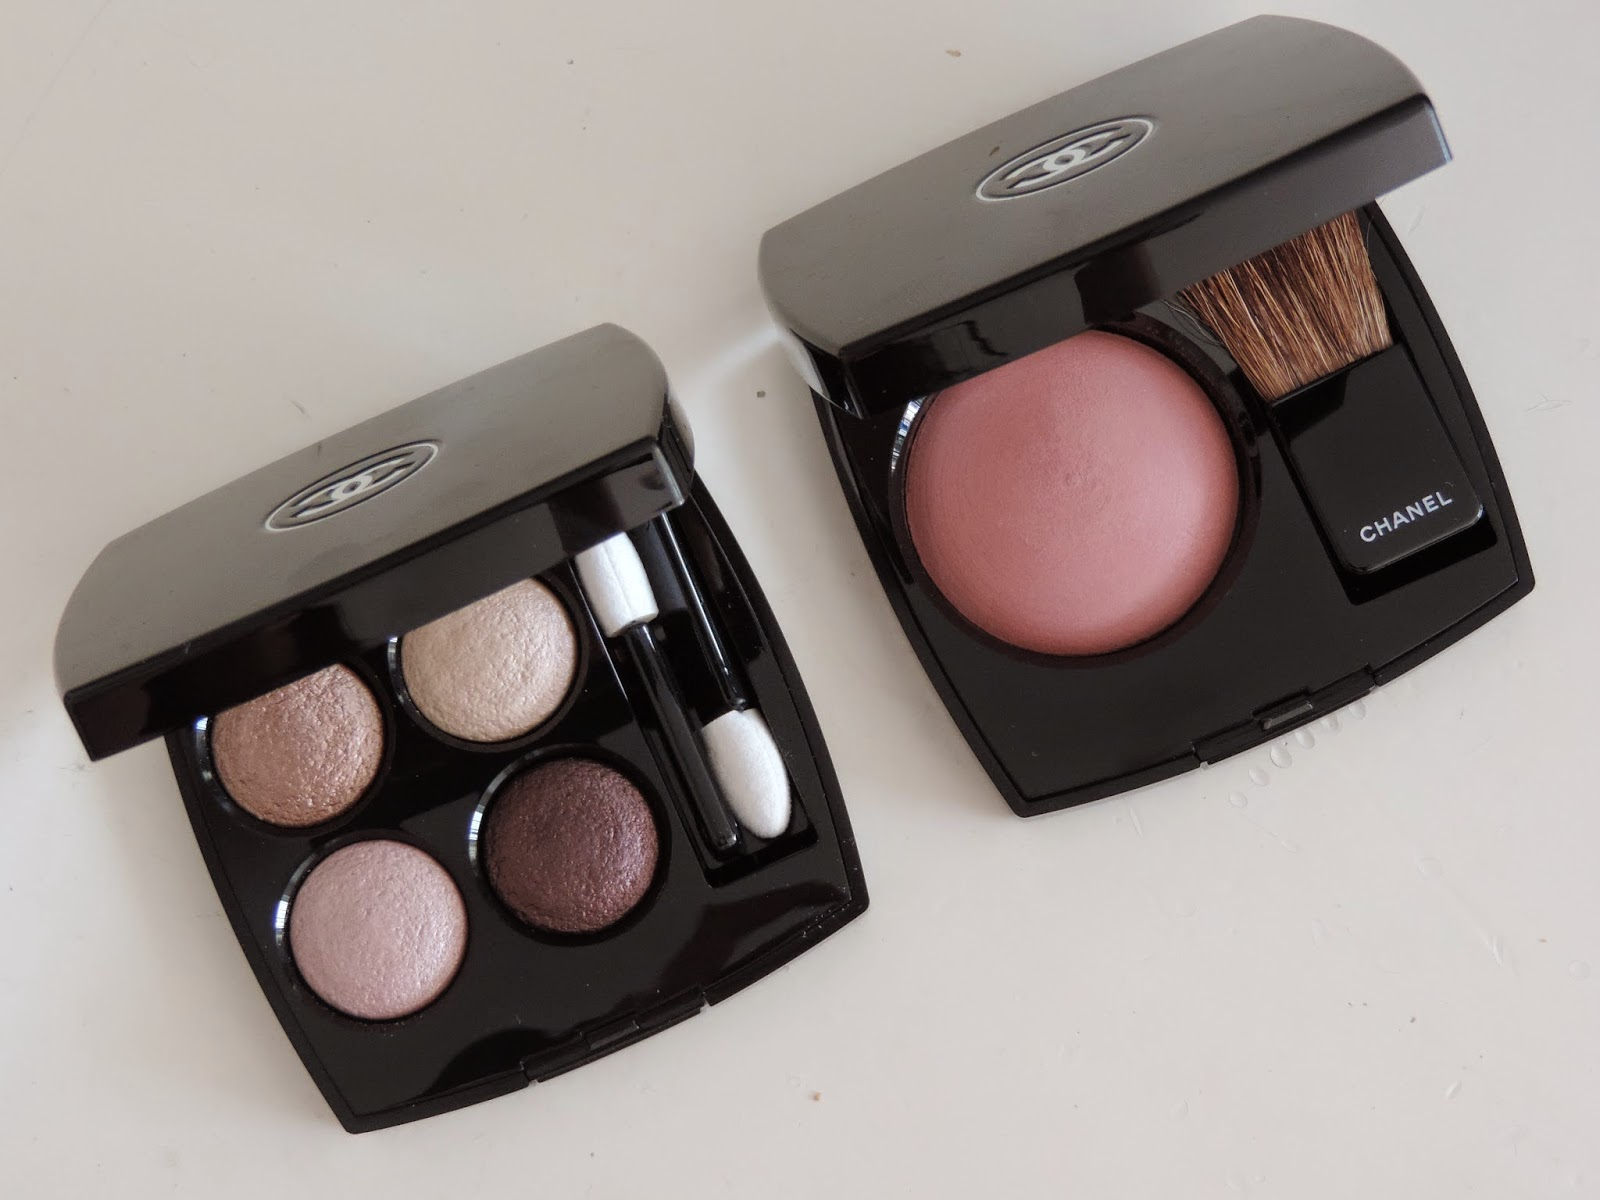 Chanel's ÉTATS POÉTIQUES Autumn/Winter 2014 Collection